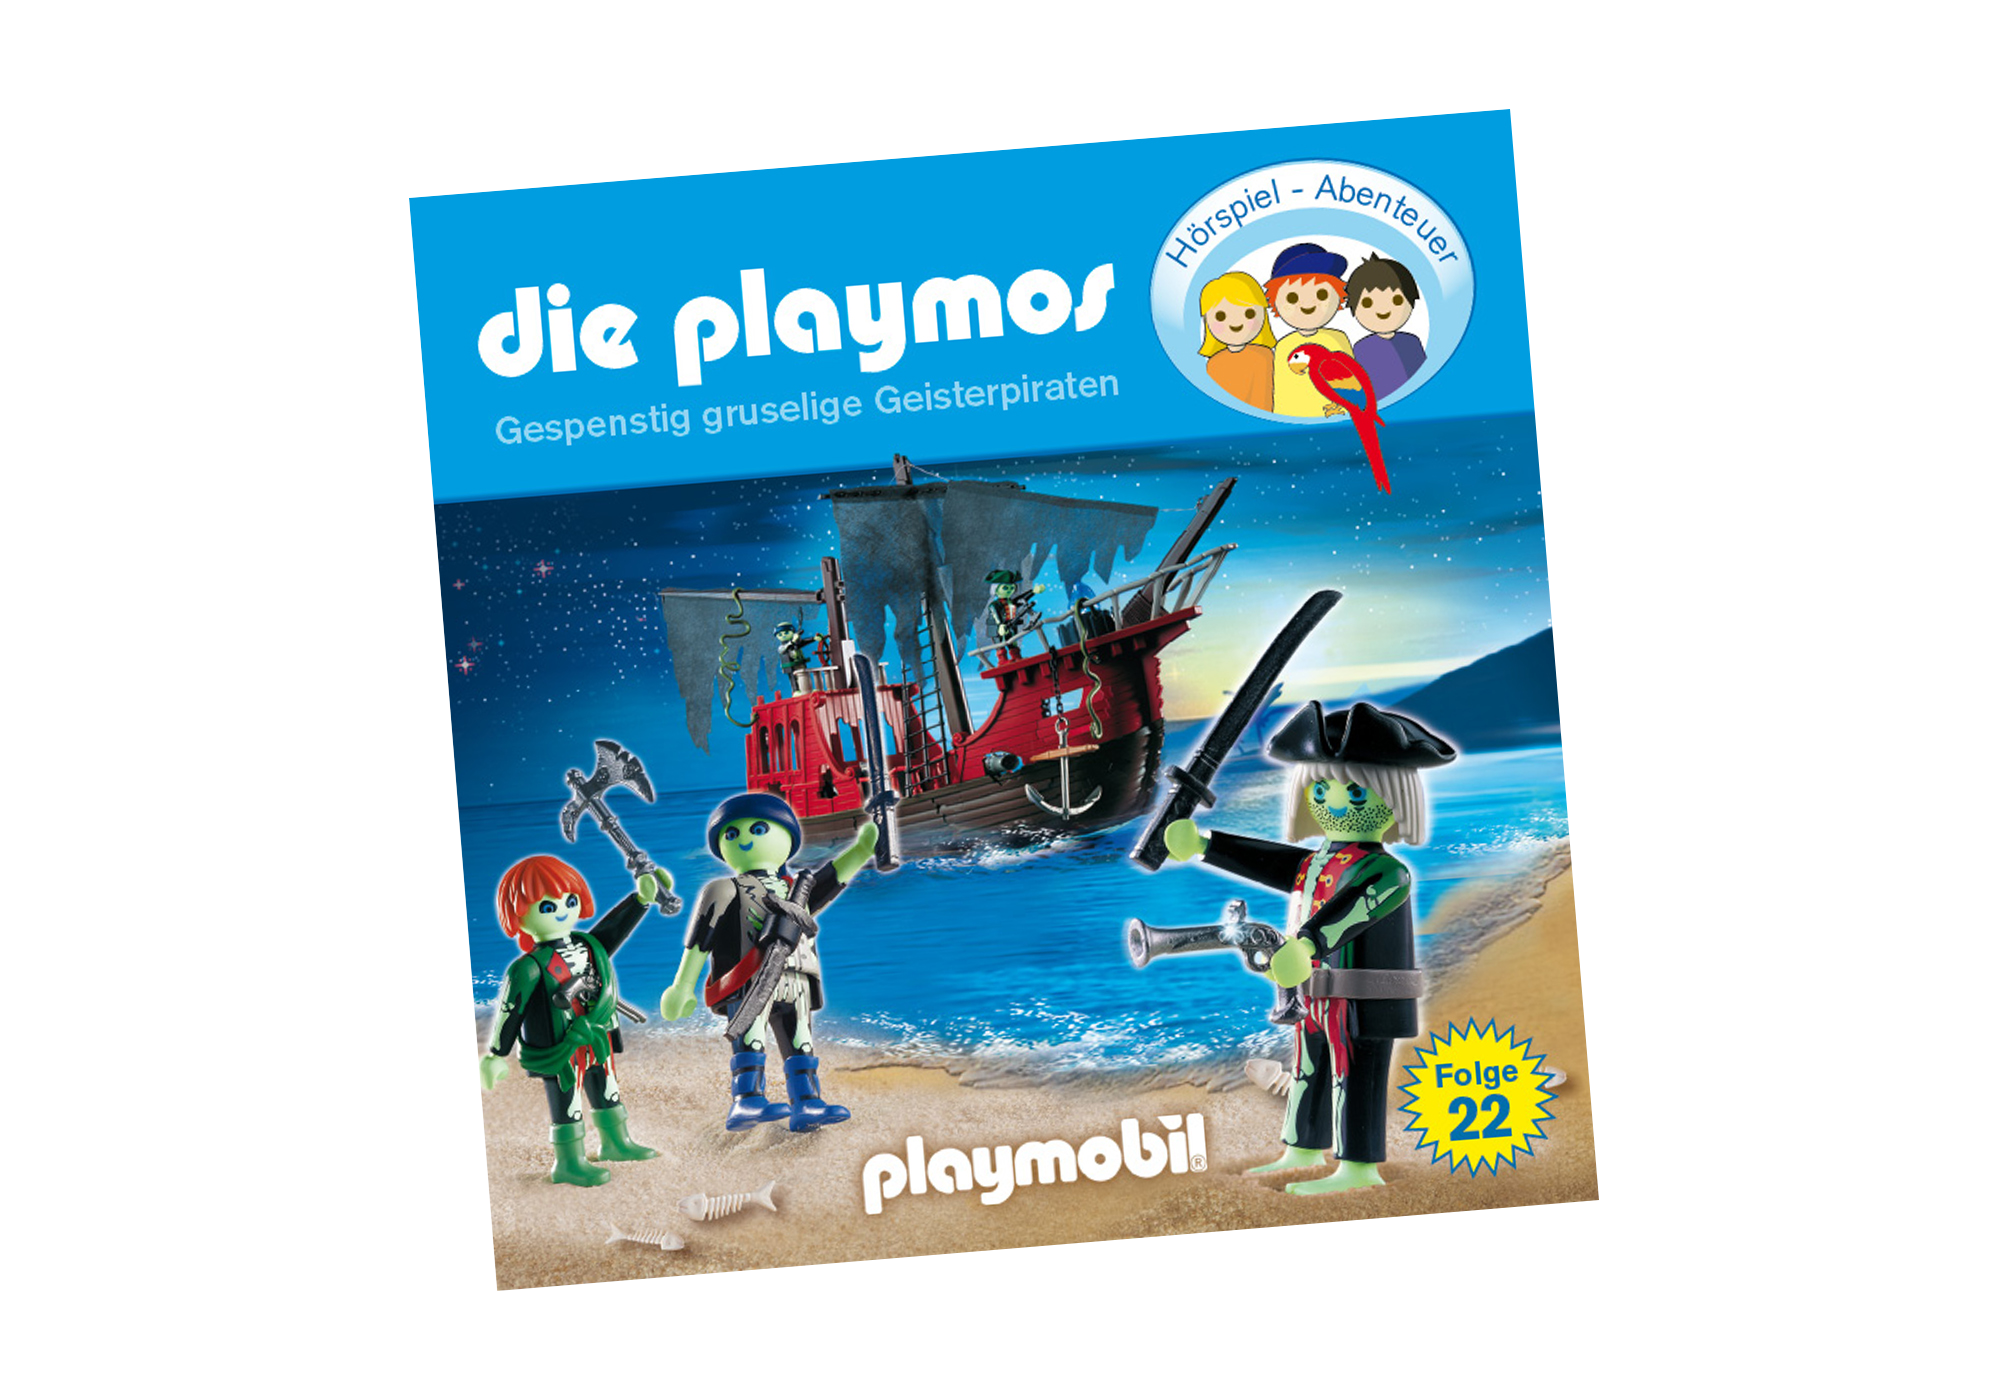 http://media.playmobil.com/i/playmobil/80323_product_detail